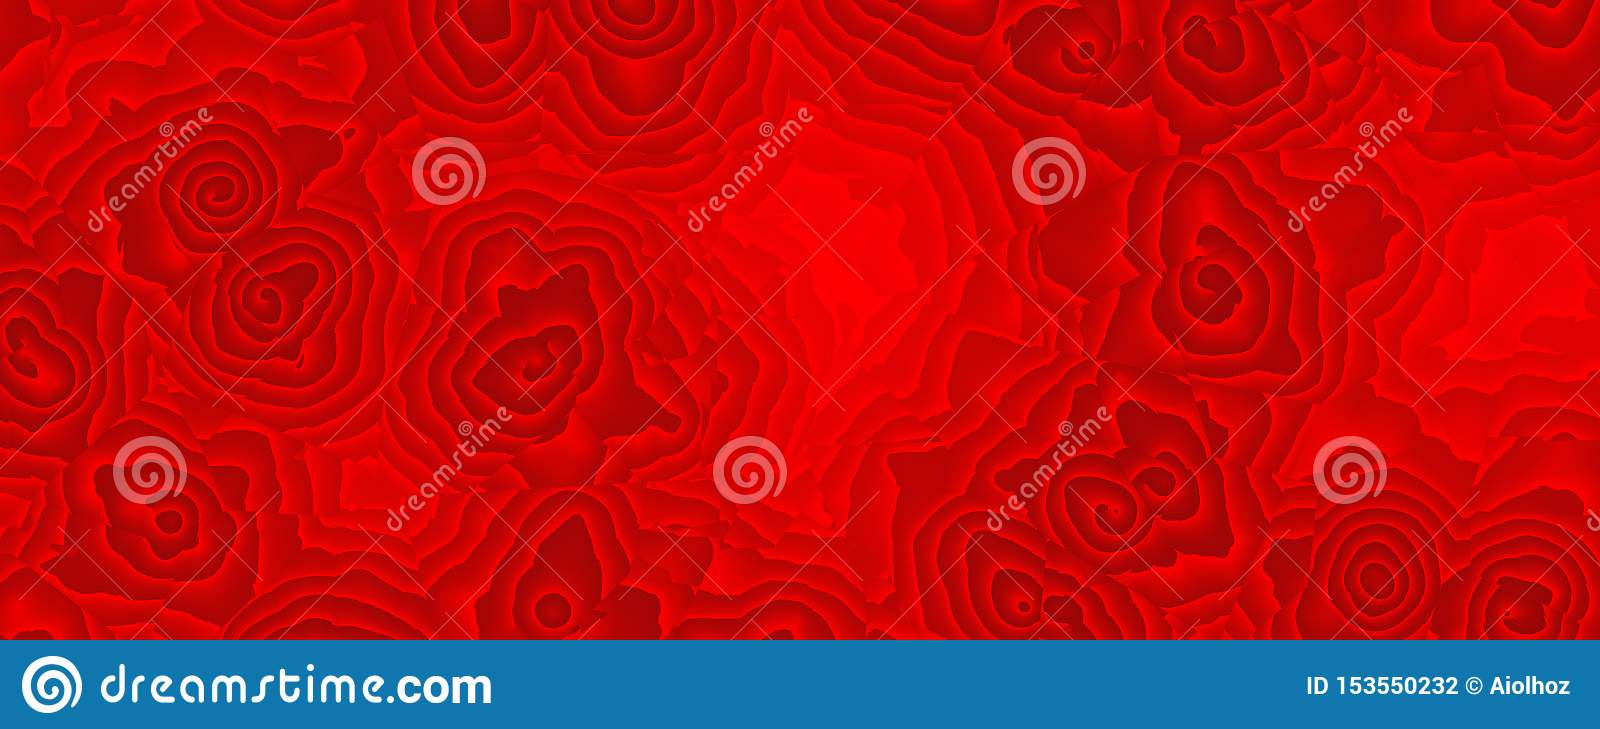 Painting abstract red rose pattern